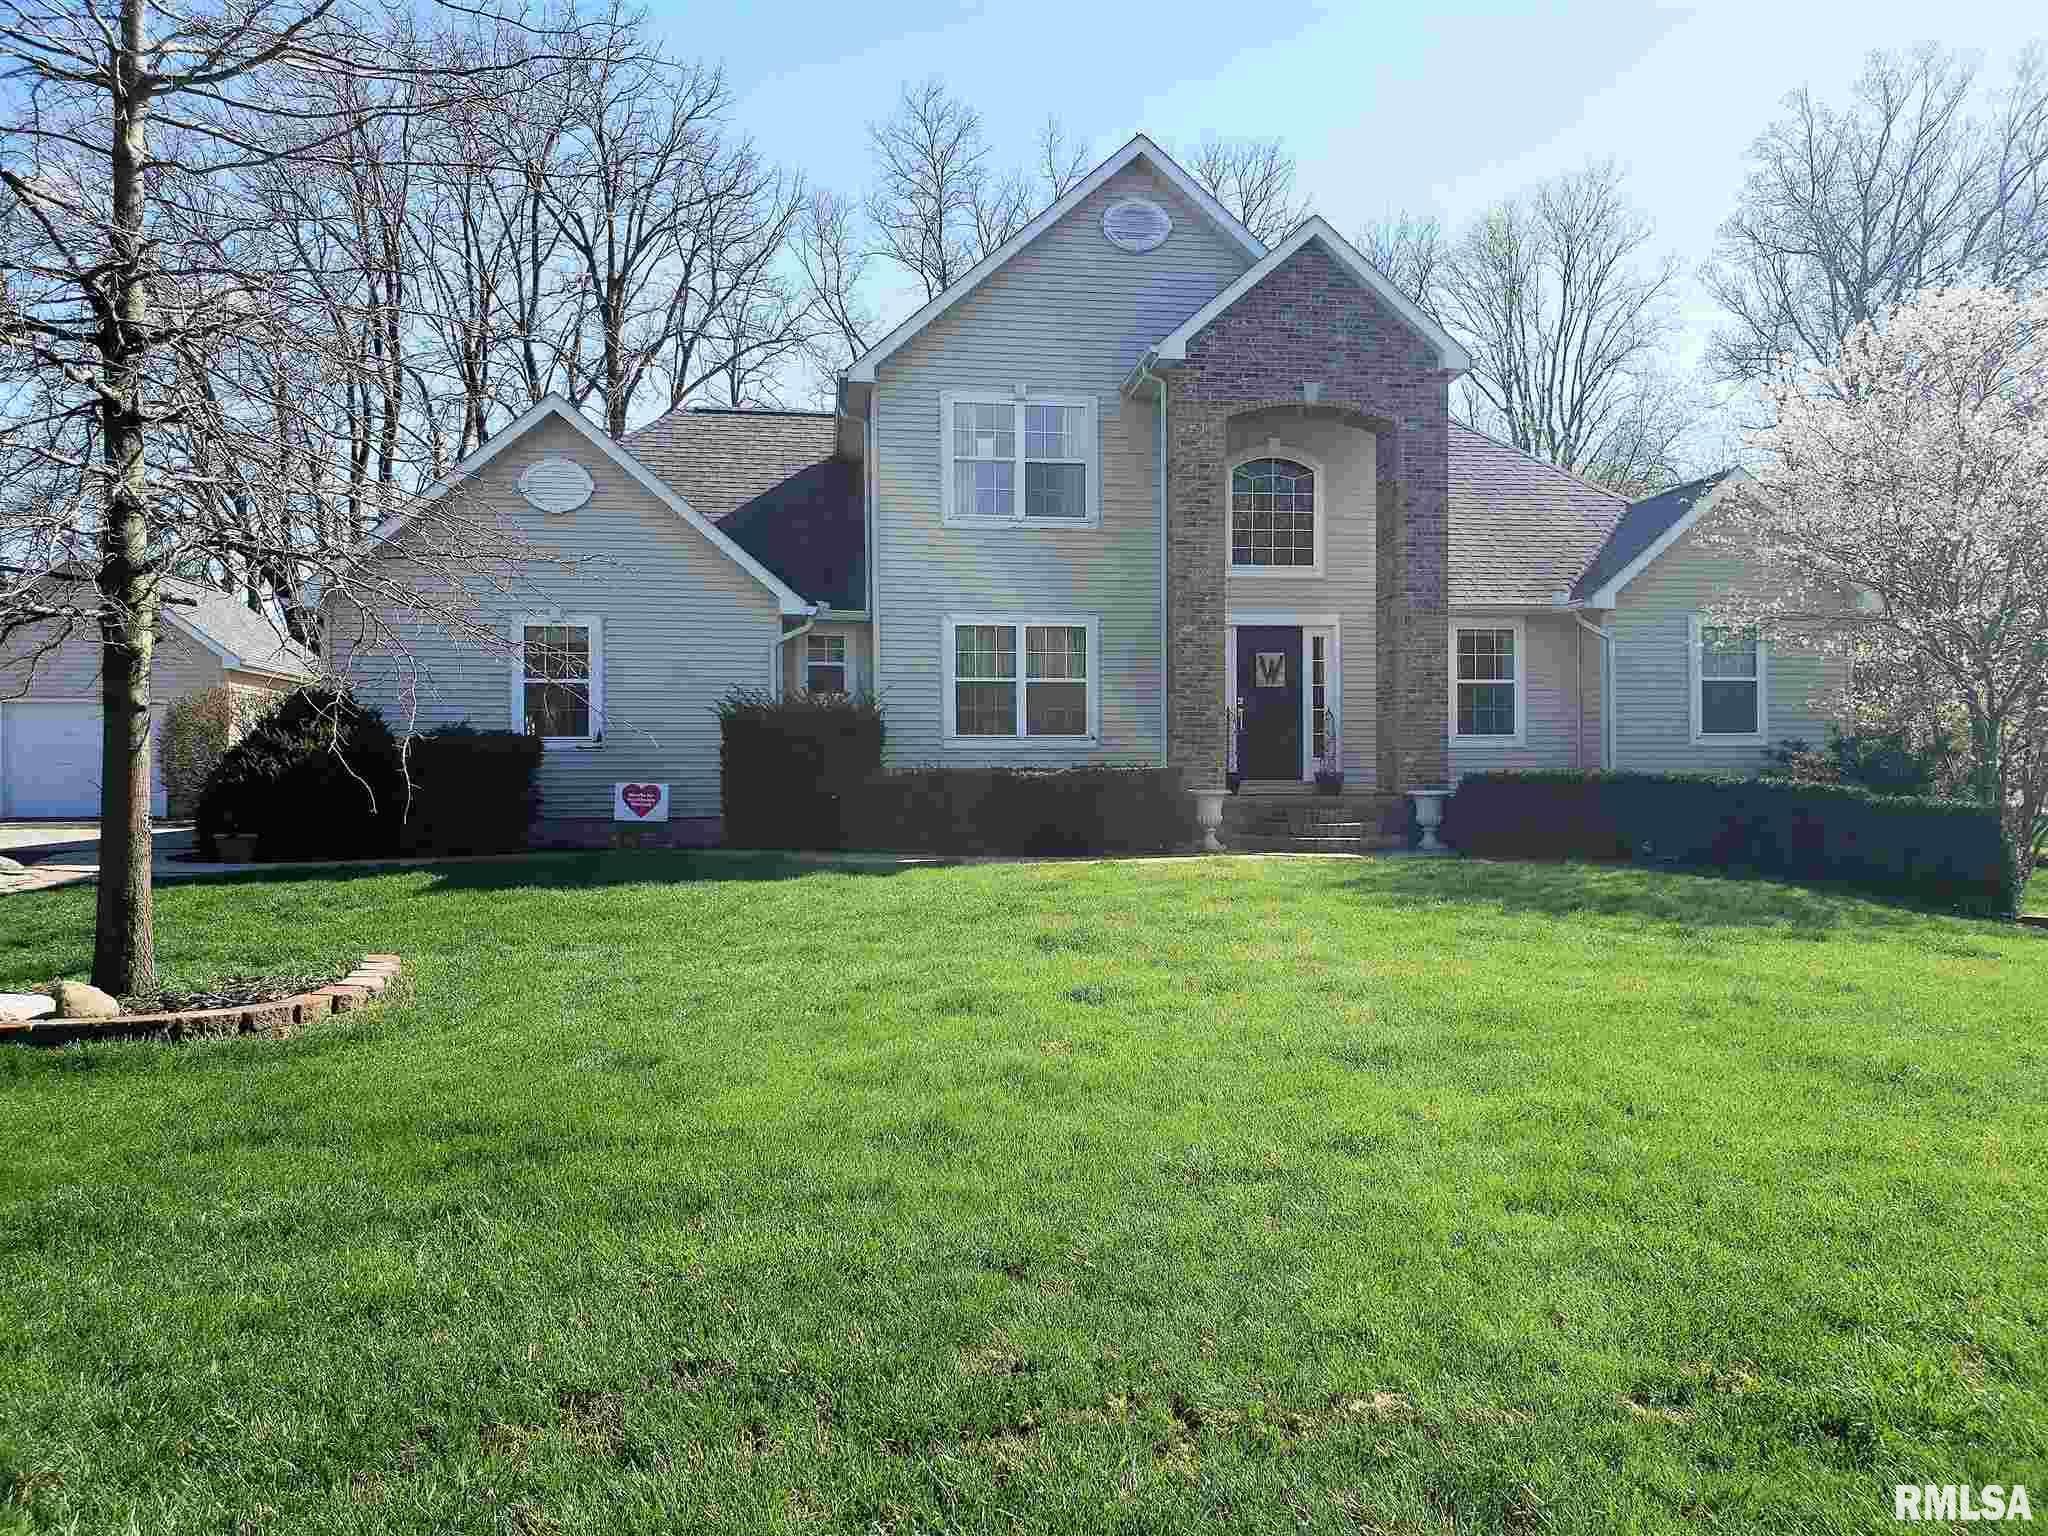 6 OAKWOOD Property Photo - Lincoln, IL real estate listing